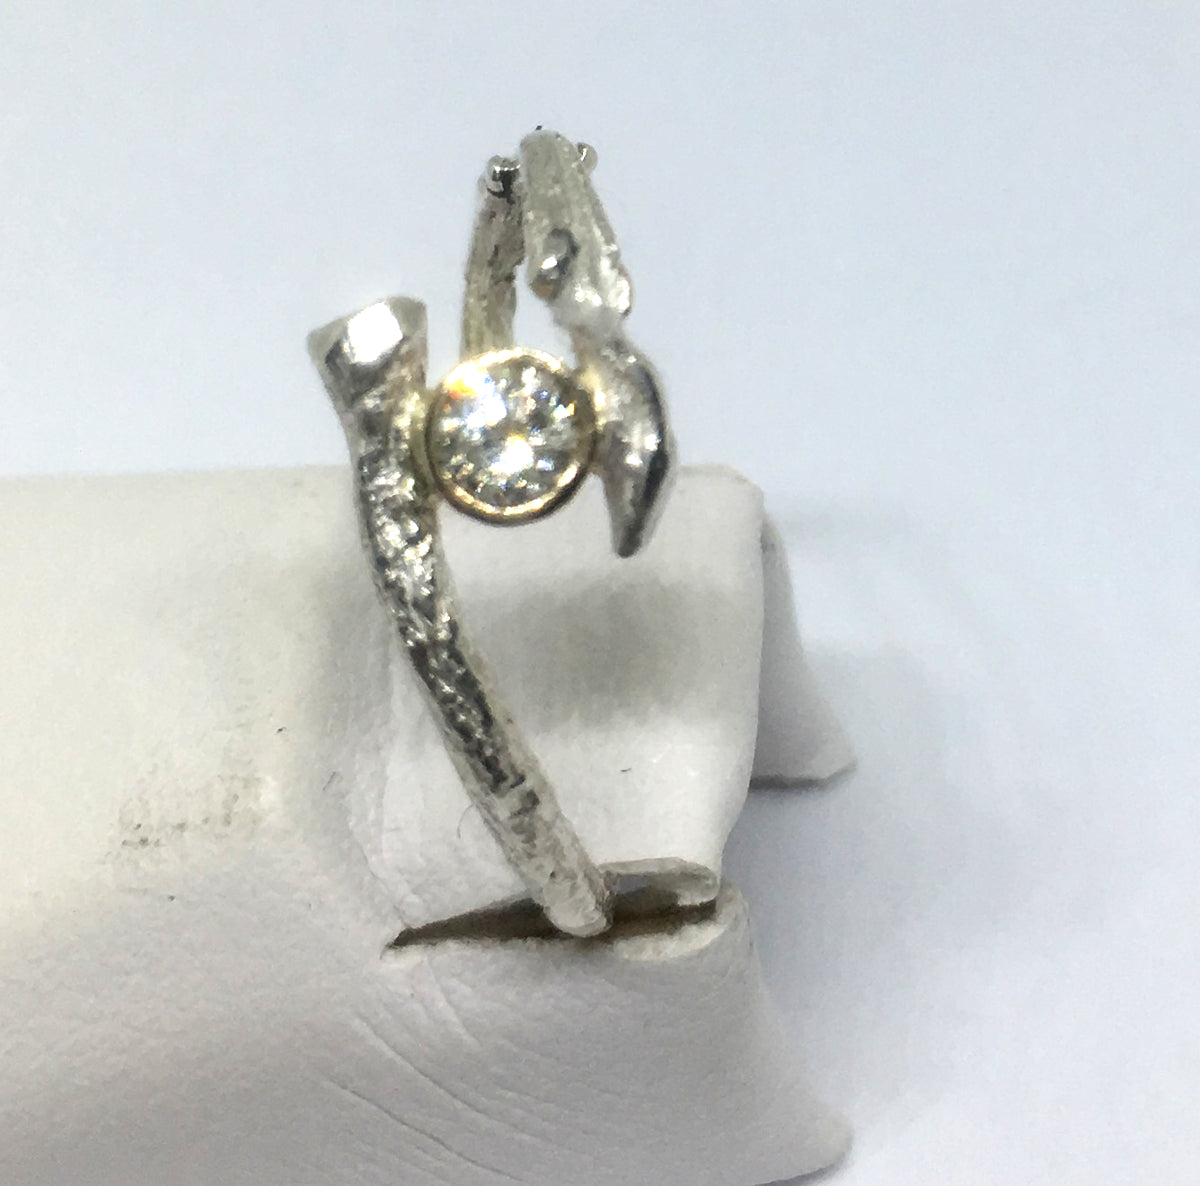 Olive Twig and Diamond Ring in Sterling Silver and 14K Gold